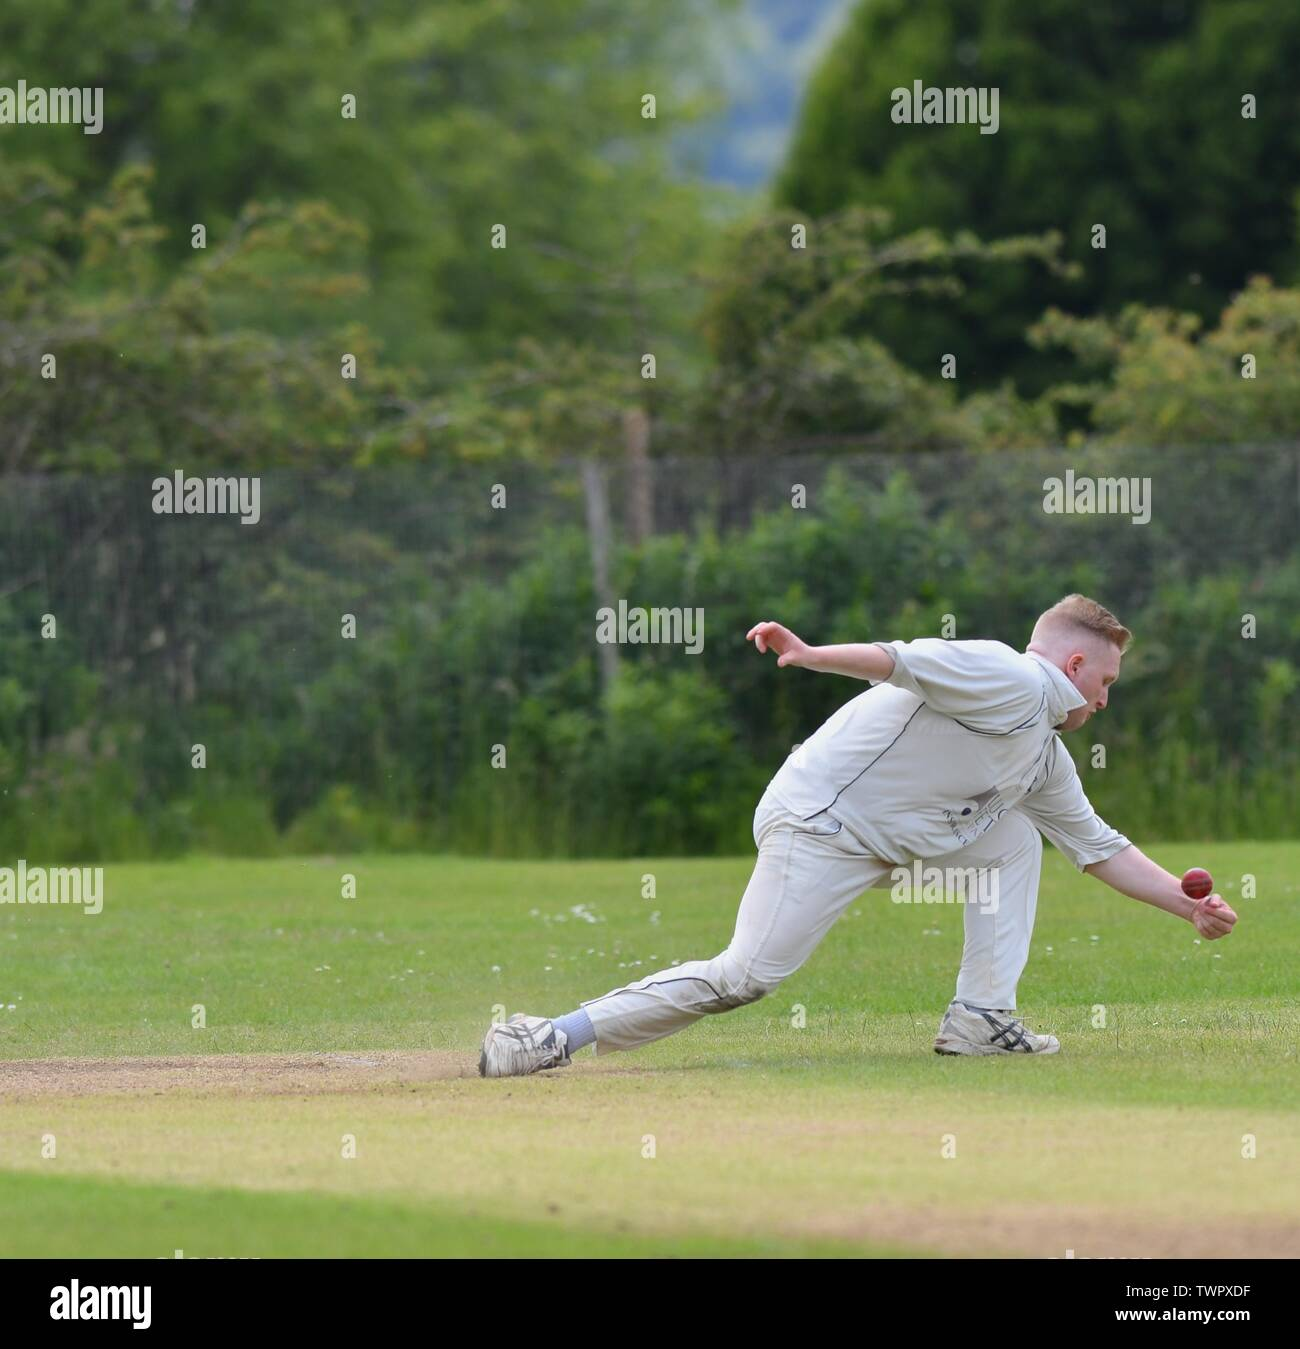 A fielder stops the ball. - Stock Image